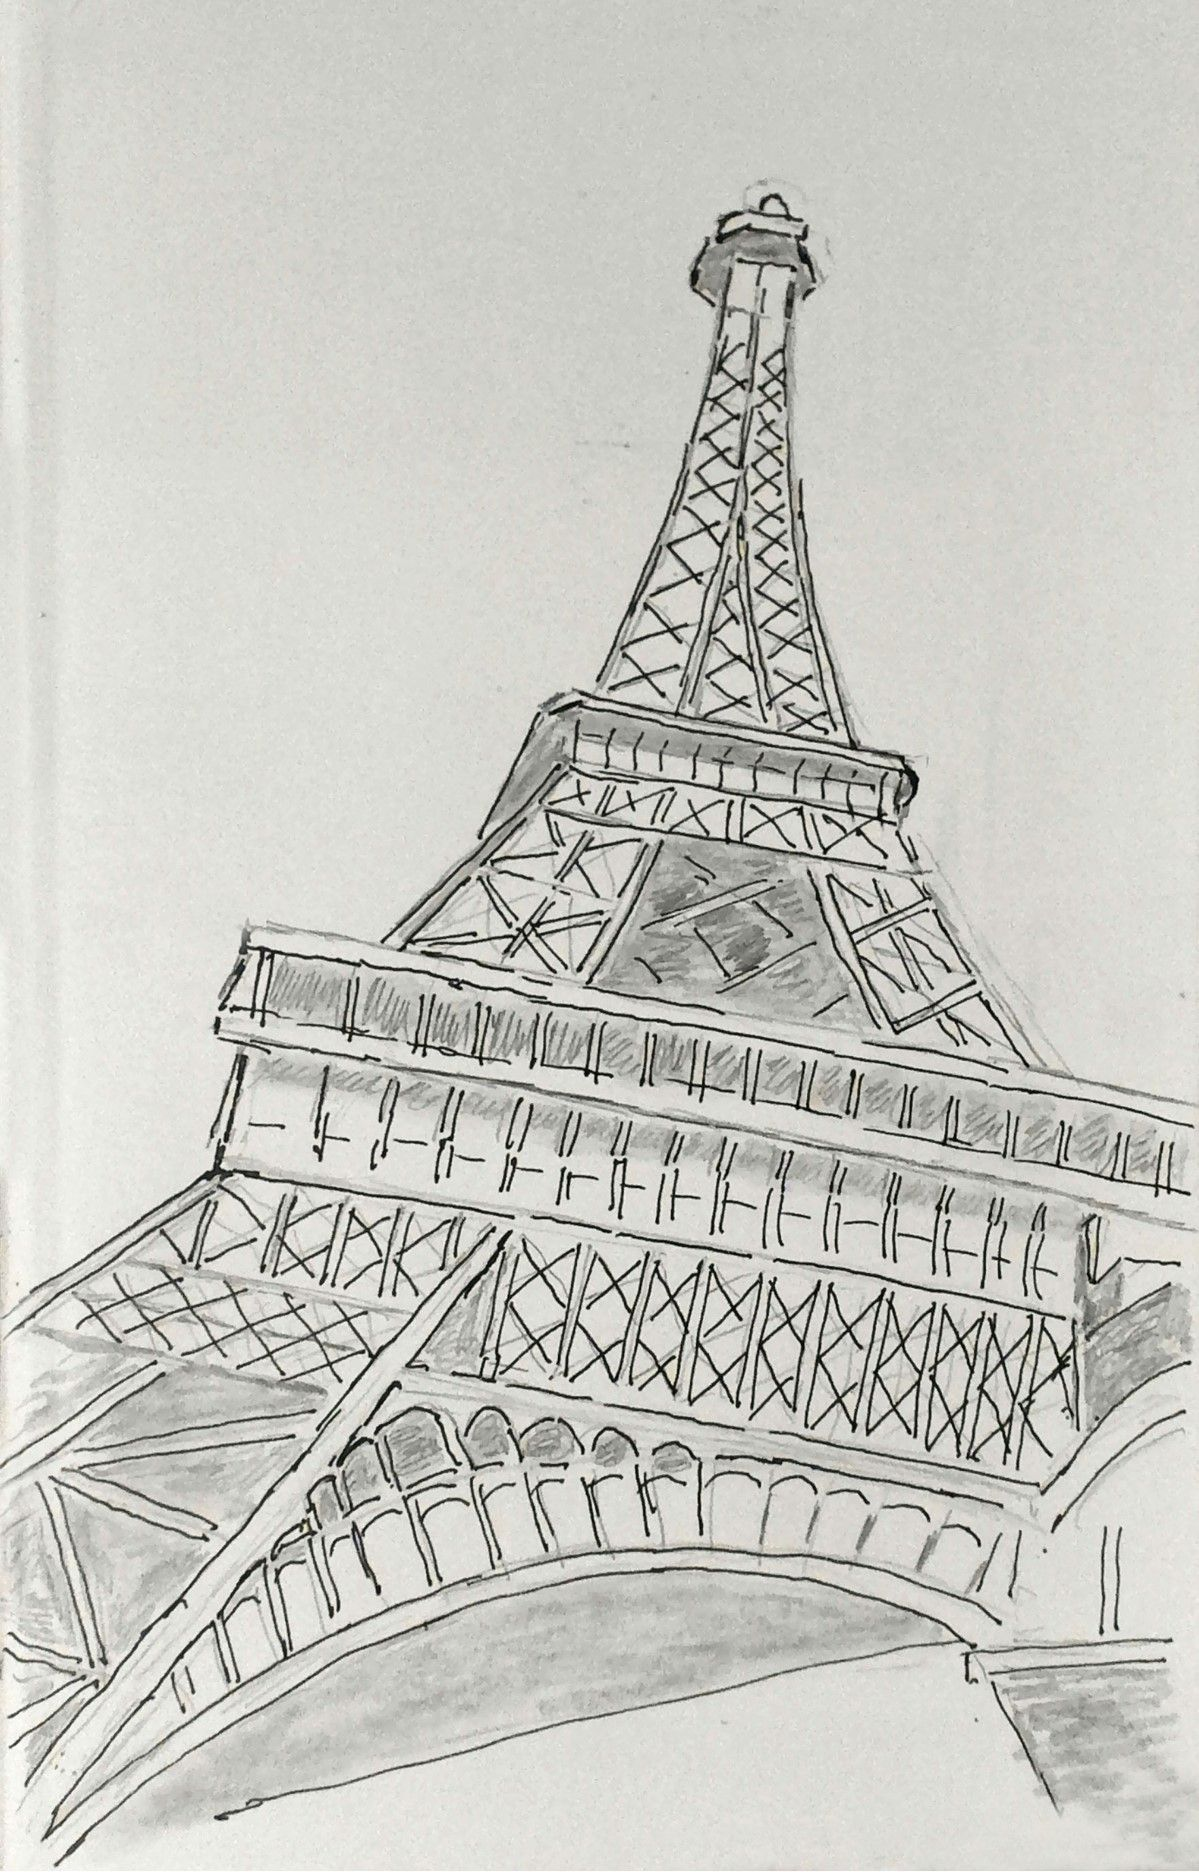 Daily drawing landmark eiffel tower a different perspective see more at facebook com everettswatercolors and like my page